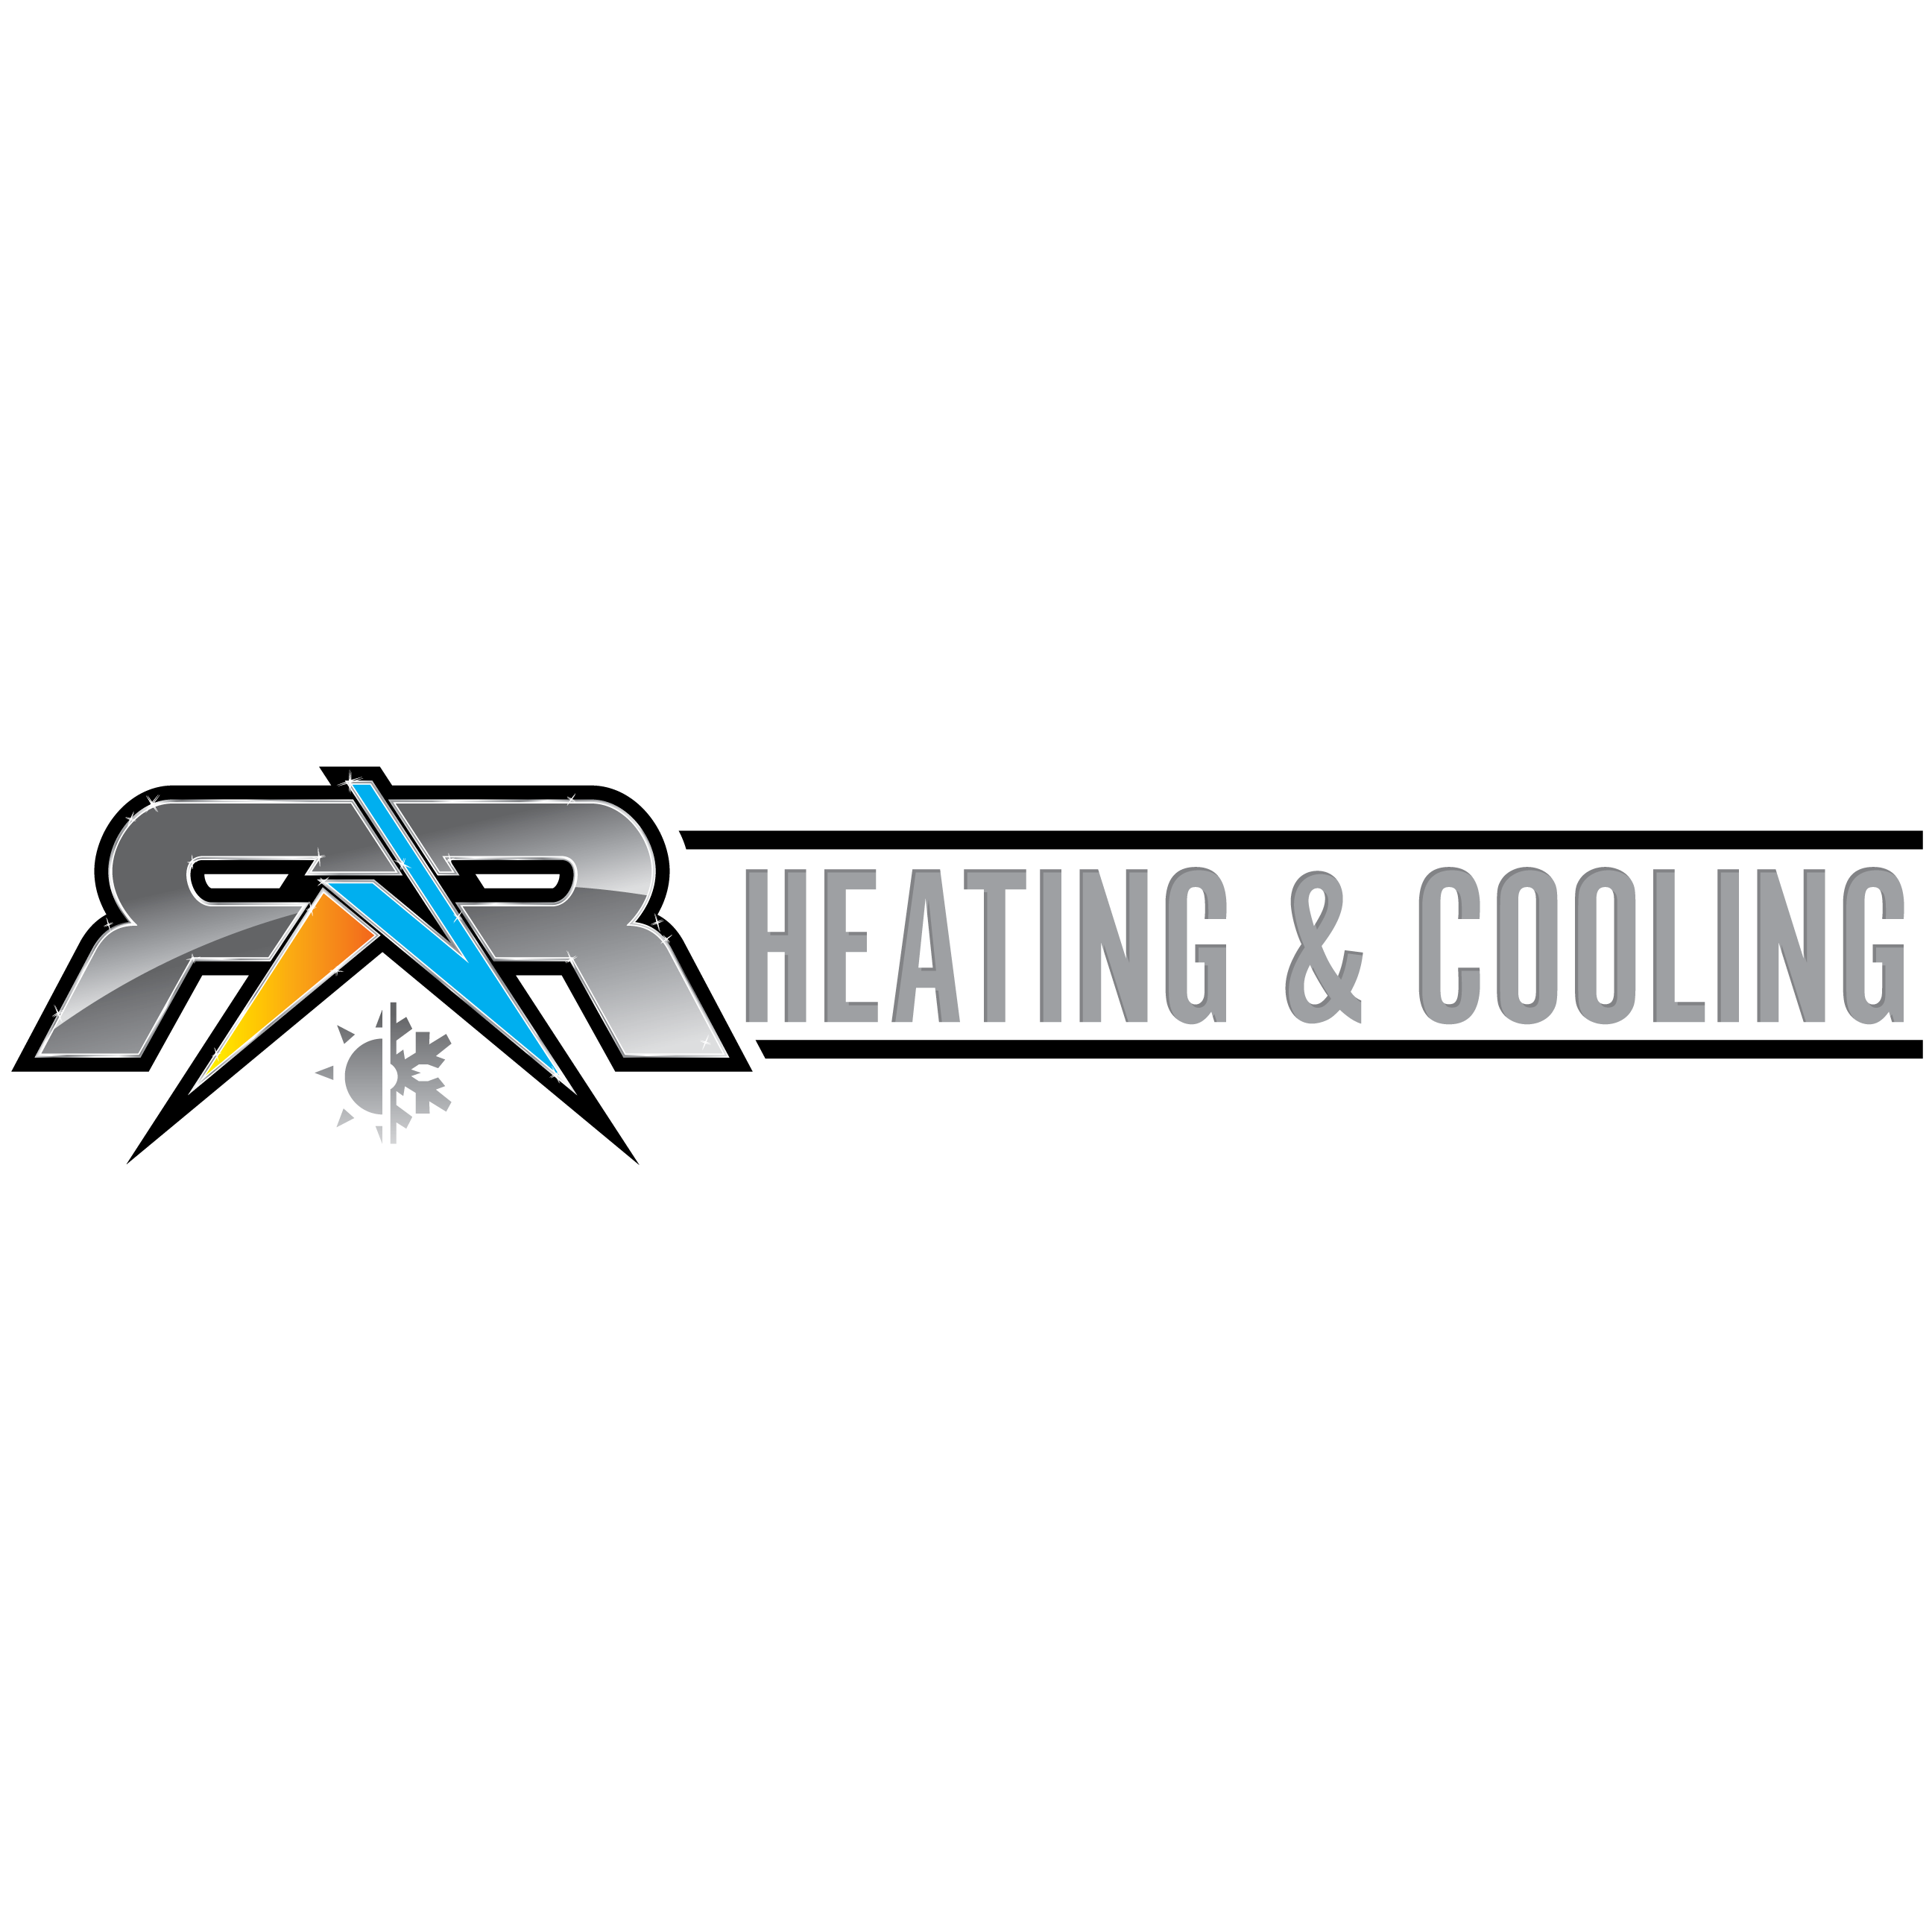 R&R Heating and Cooling - Murrieta, CA - Heating & Air Conditioning